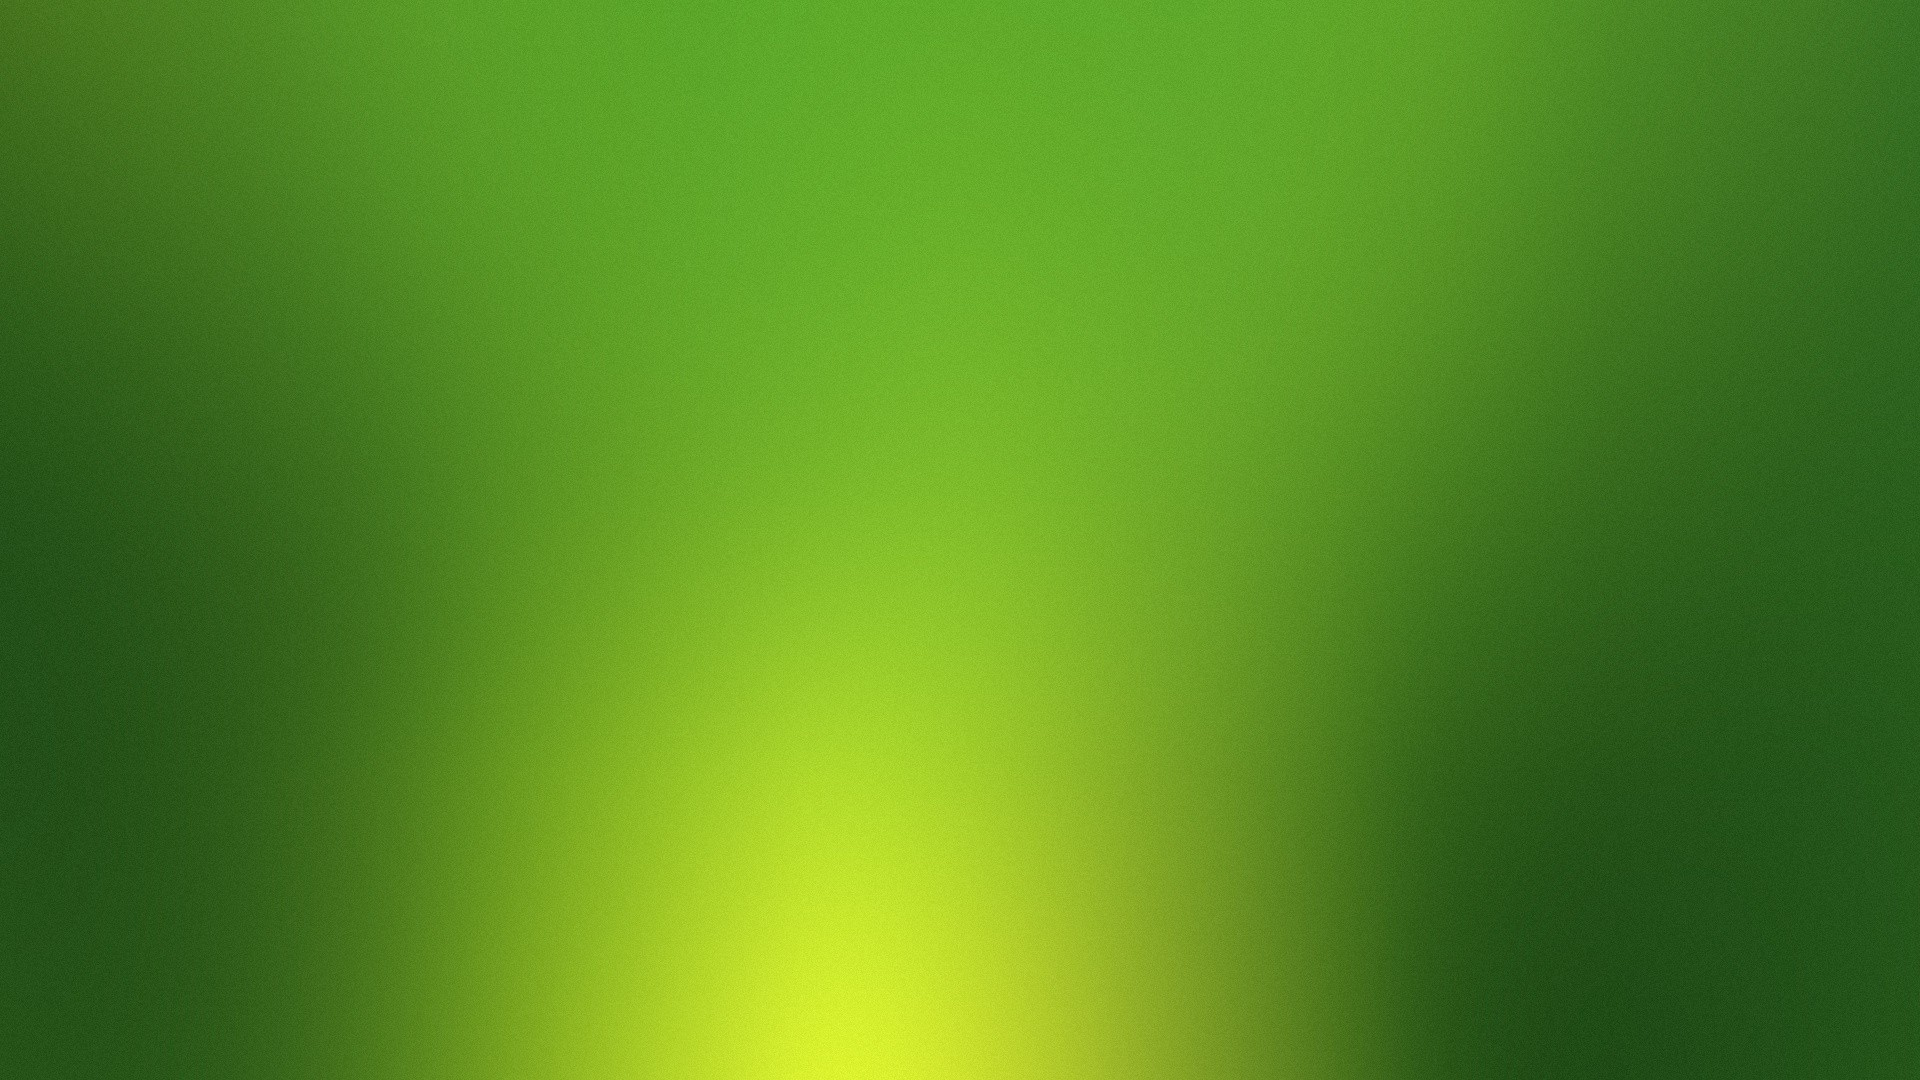 Green gaussian blur backgrounds HD Wallpaper